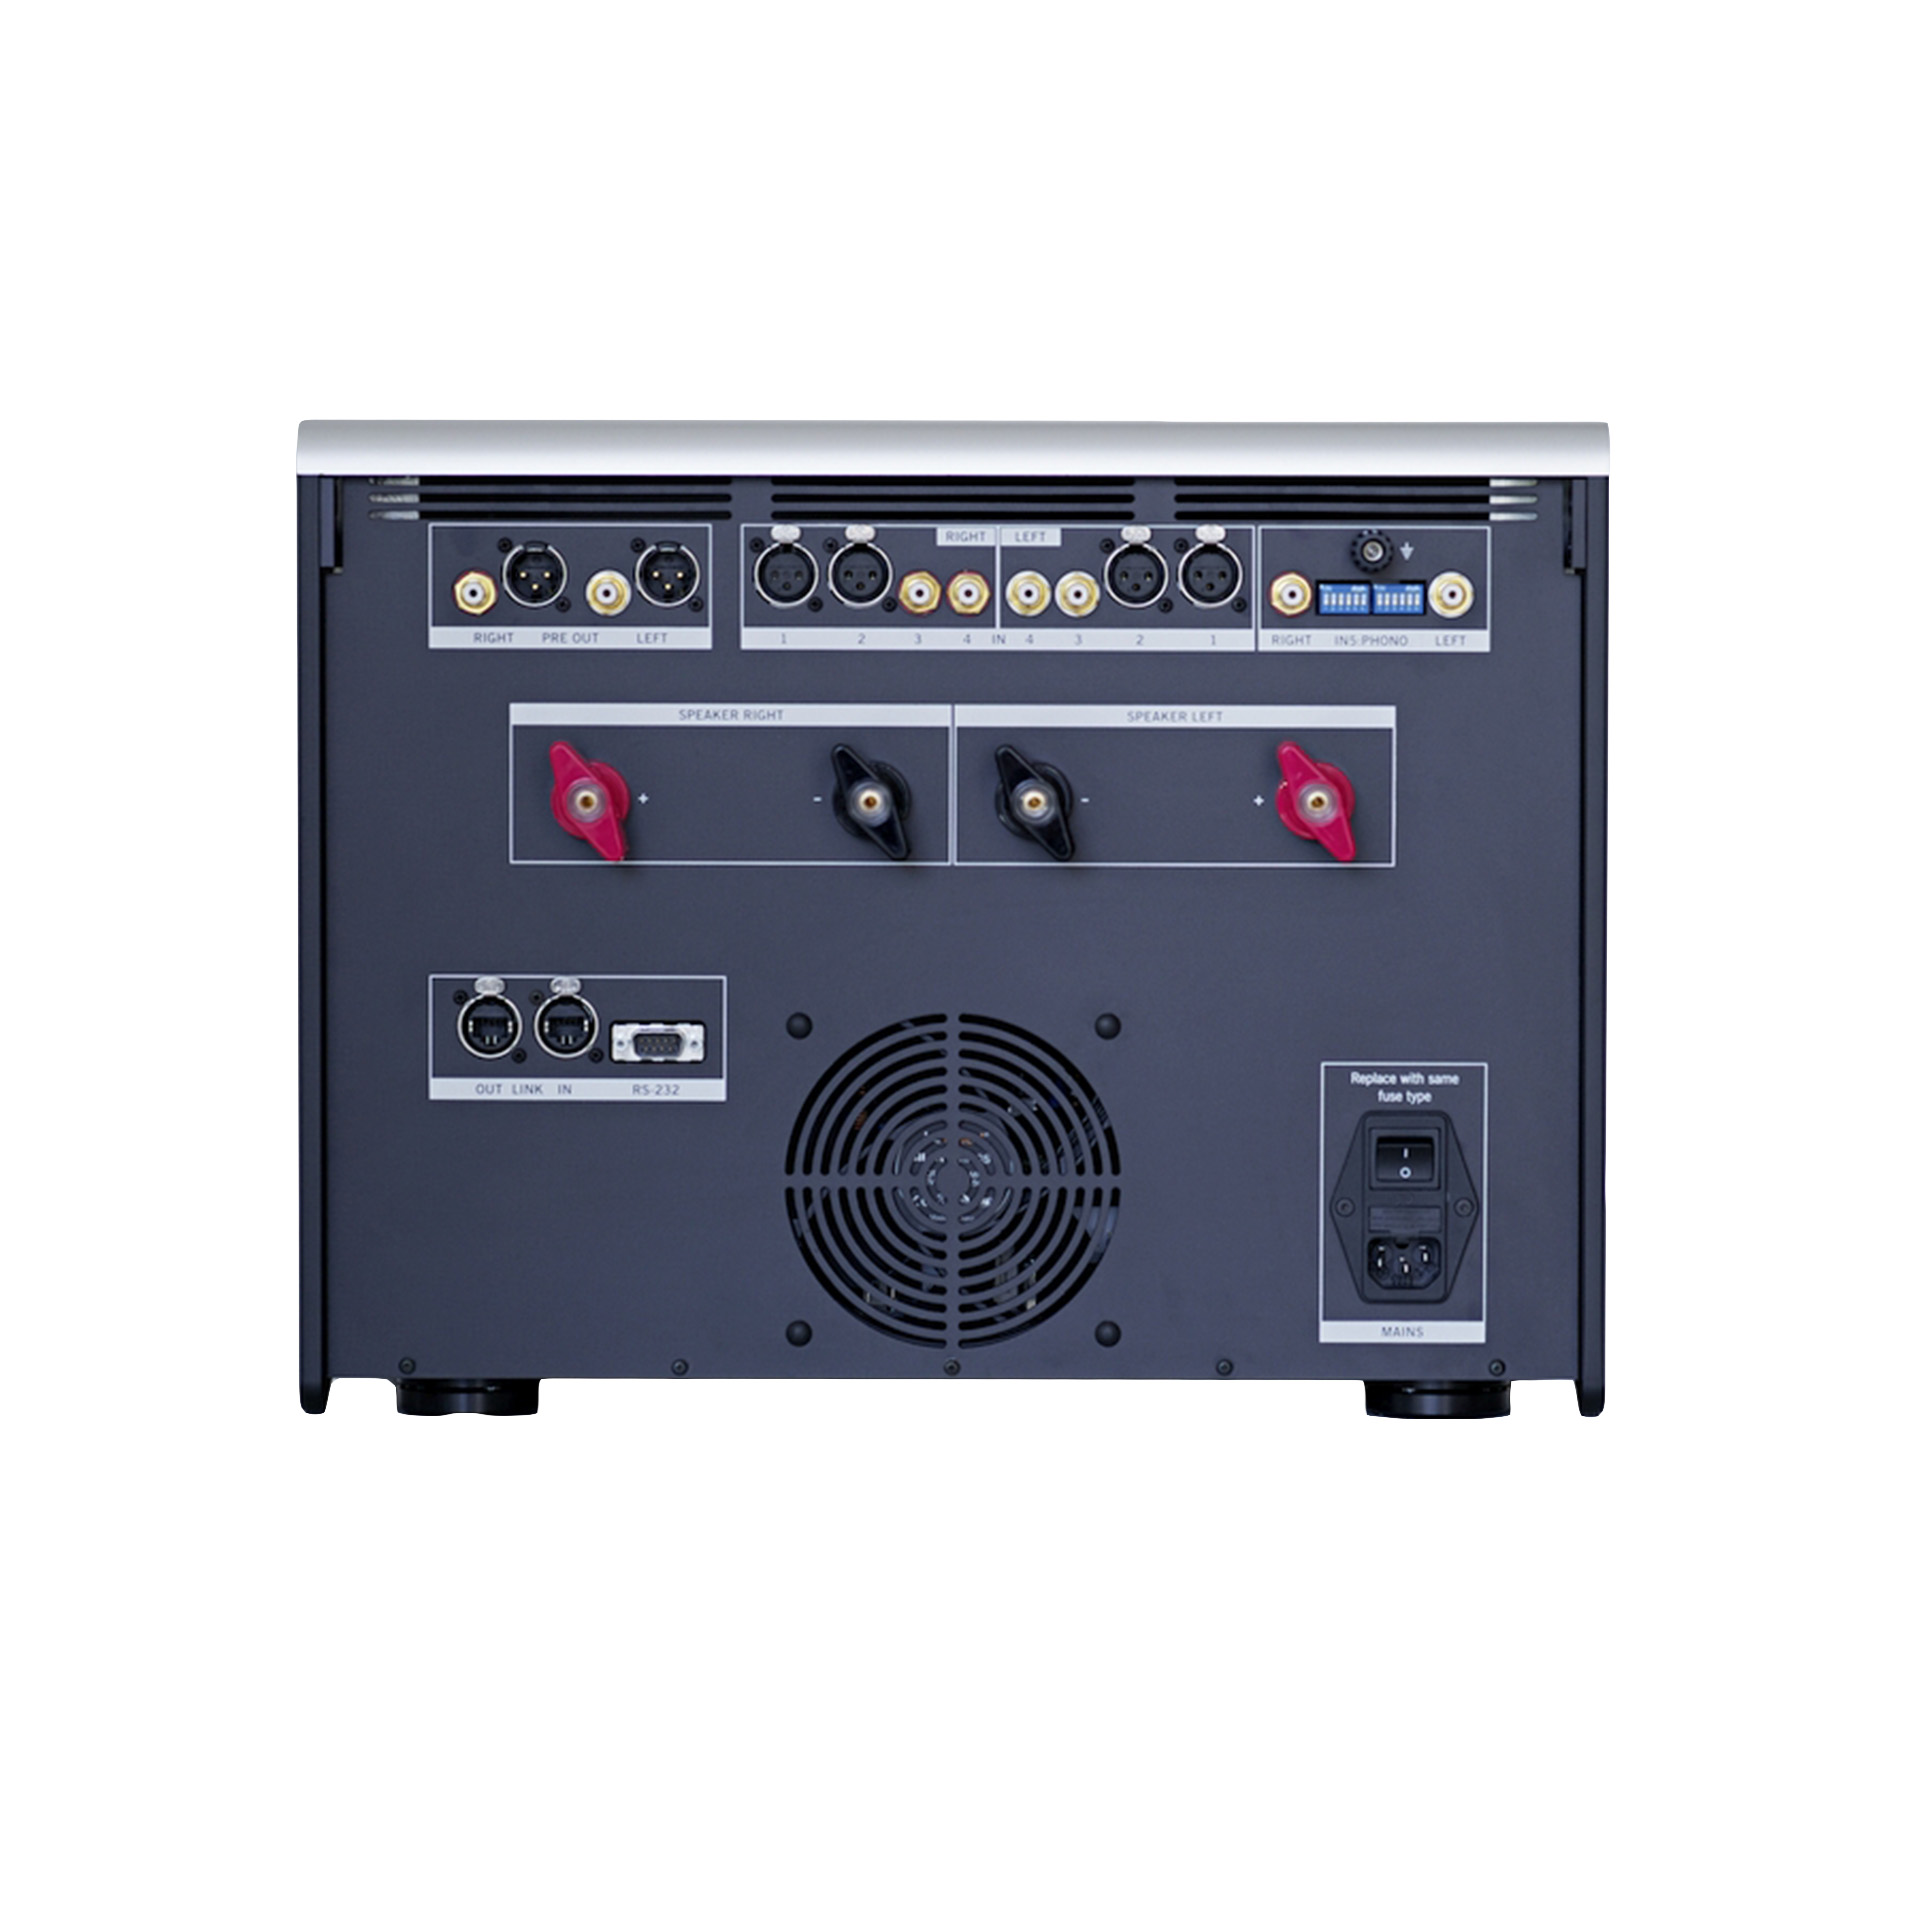 Soulution 530 Int - Chattelin Audio Systems